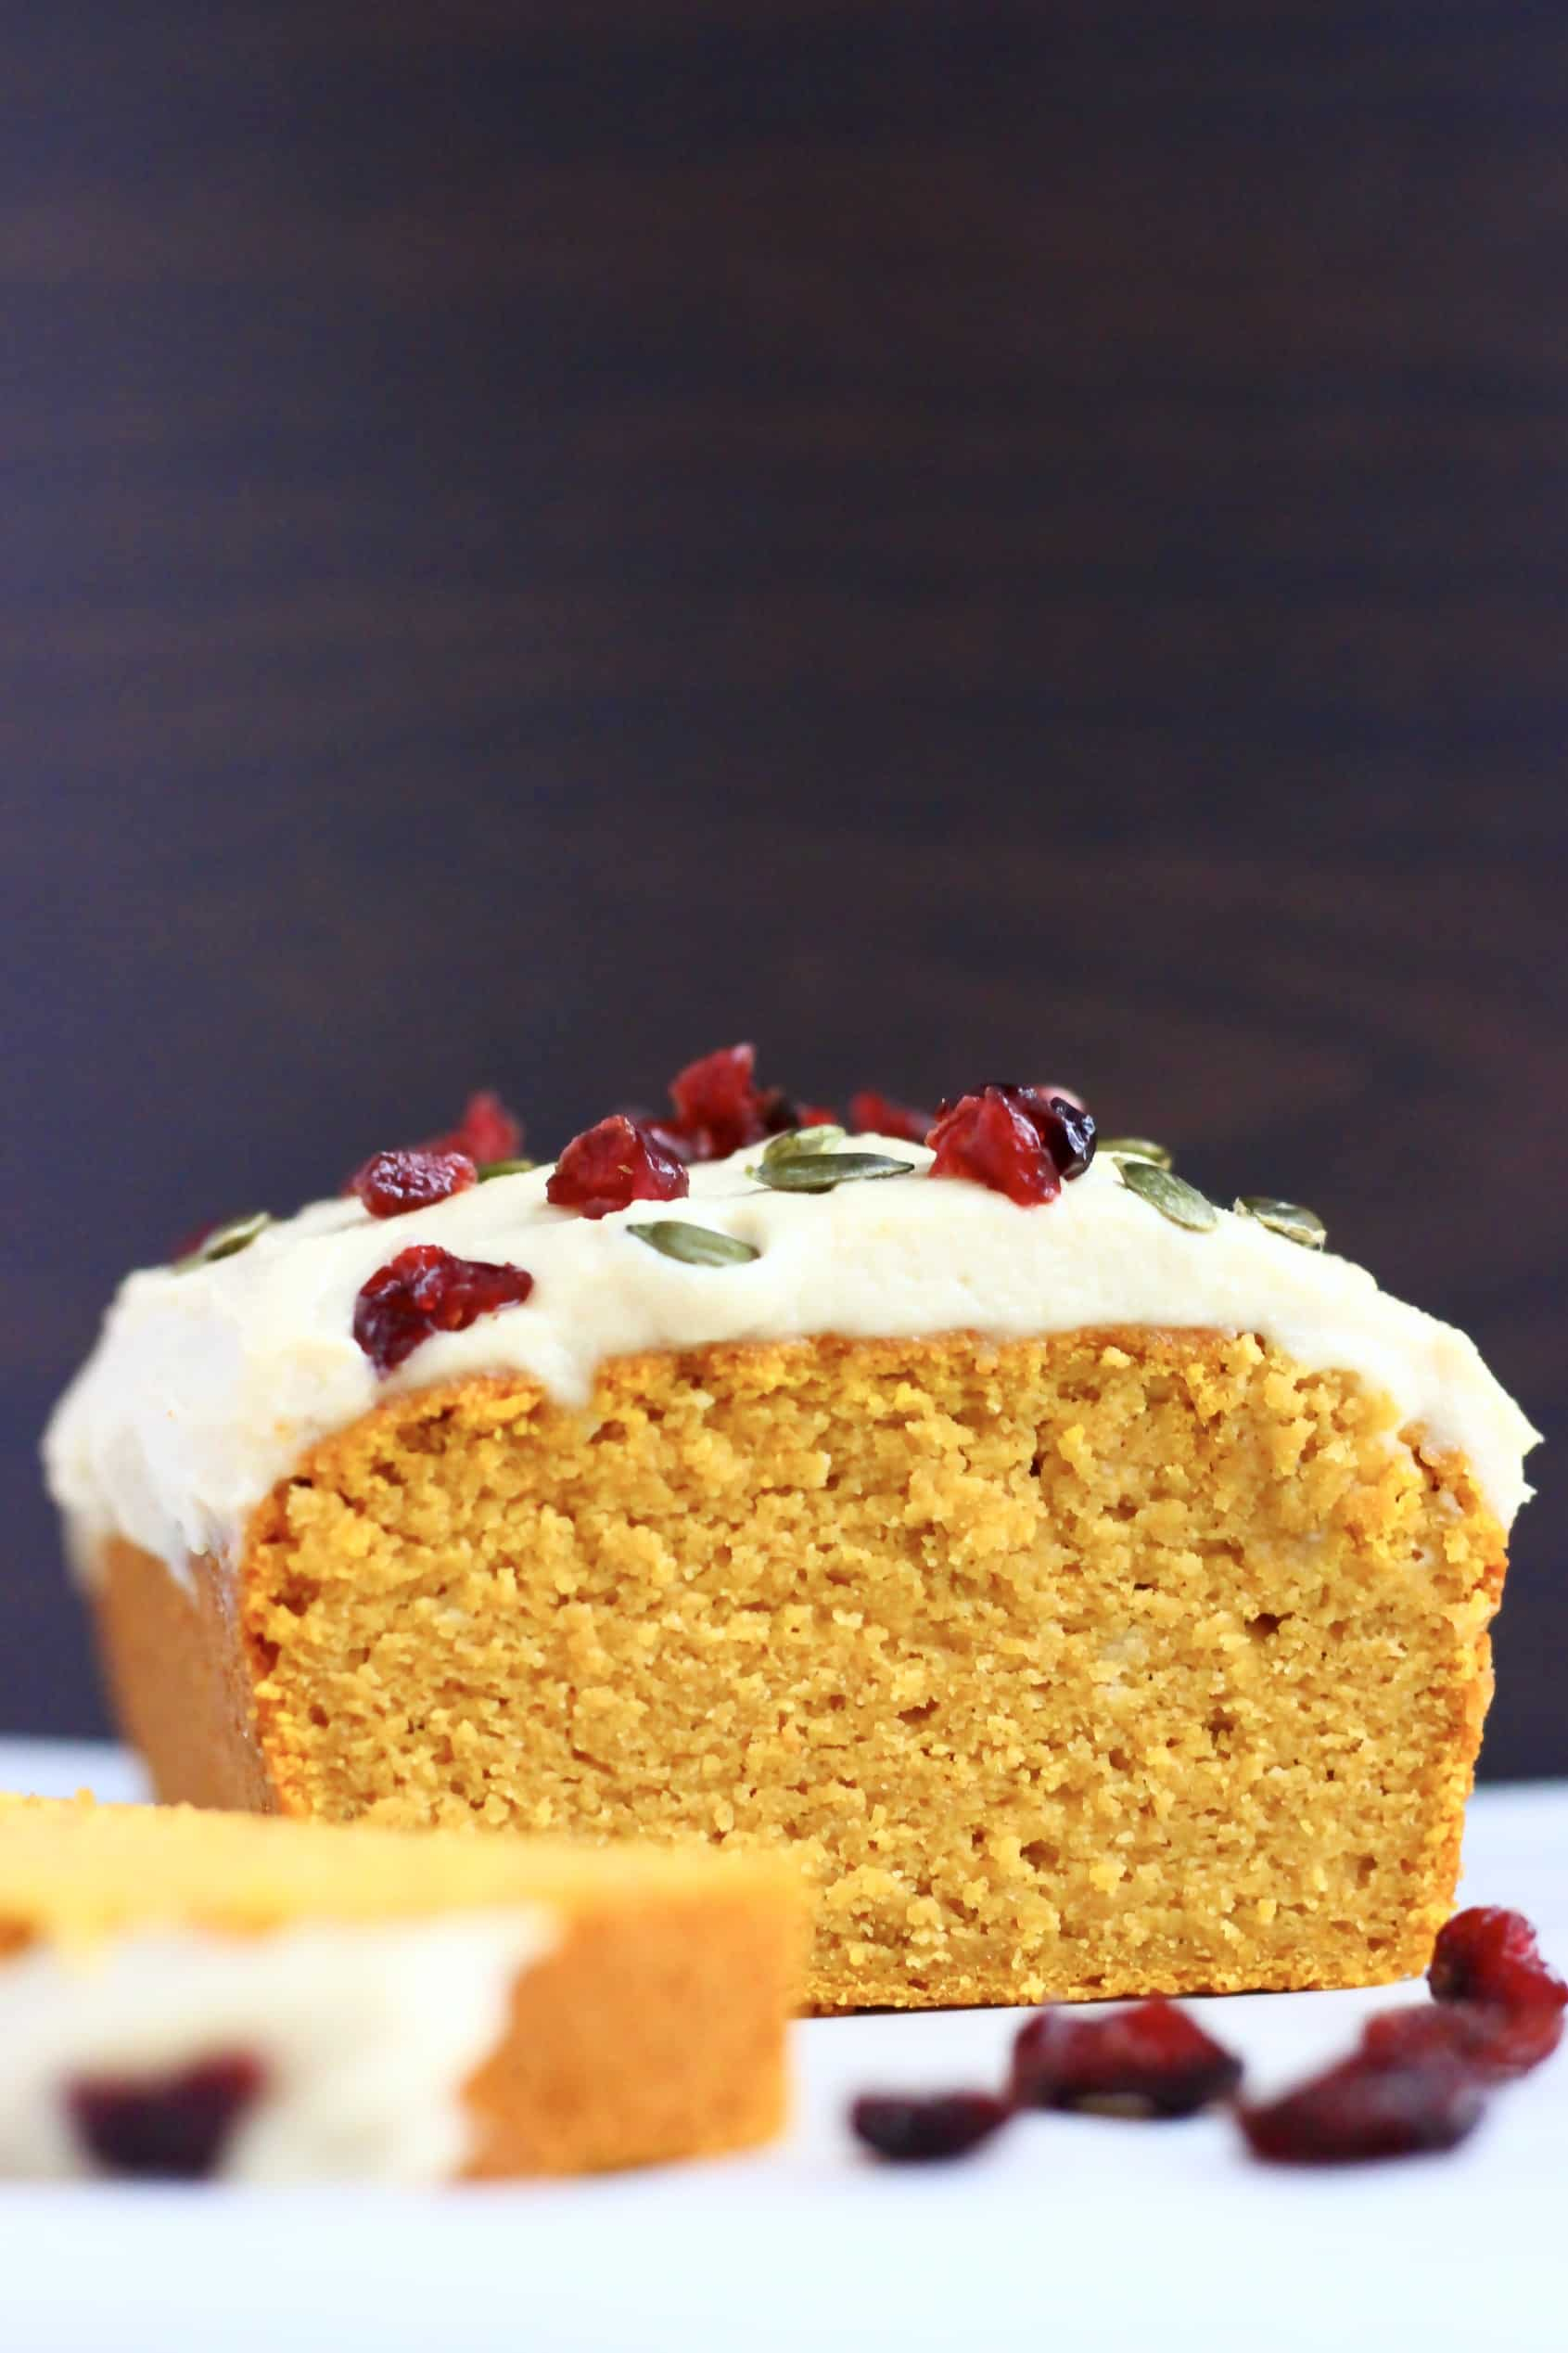 A sliced gluten-free vegan pumpkin loaf cake topped with cream cheese frosting, dried cranberries and pumpkin seeds